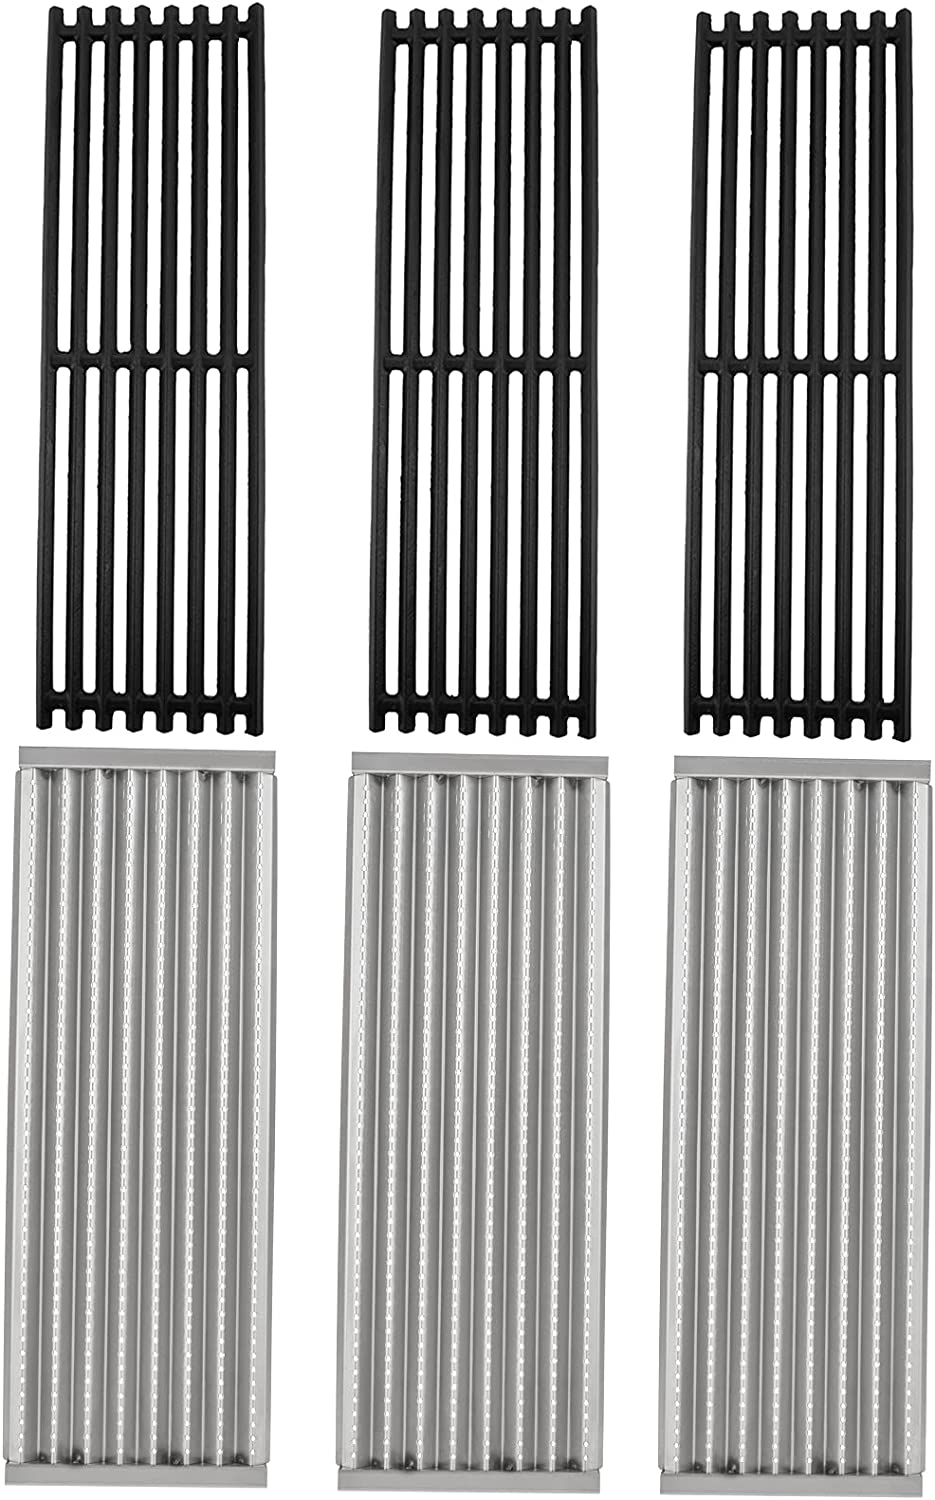 BBQ Topics on TV Future 3 Pack Grill Grate and Parts for Long Beach Mall Replacement Emitter